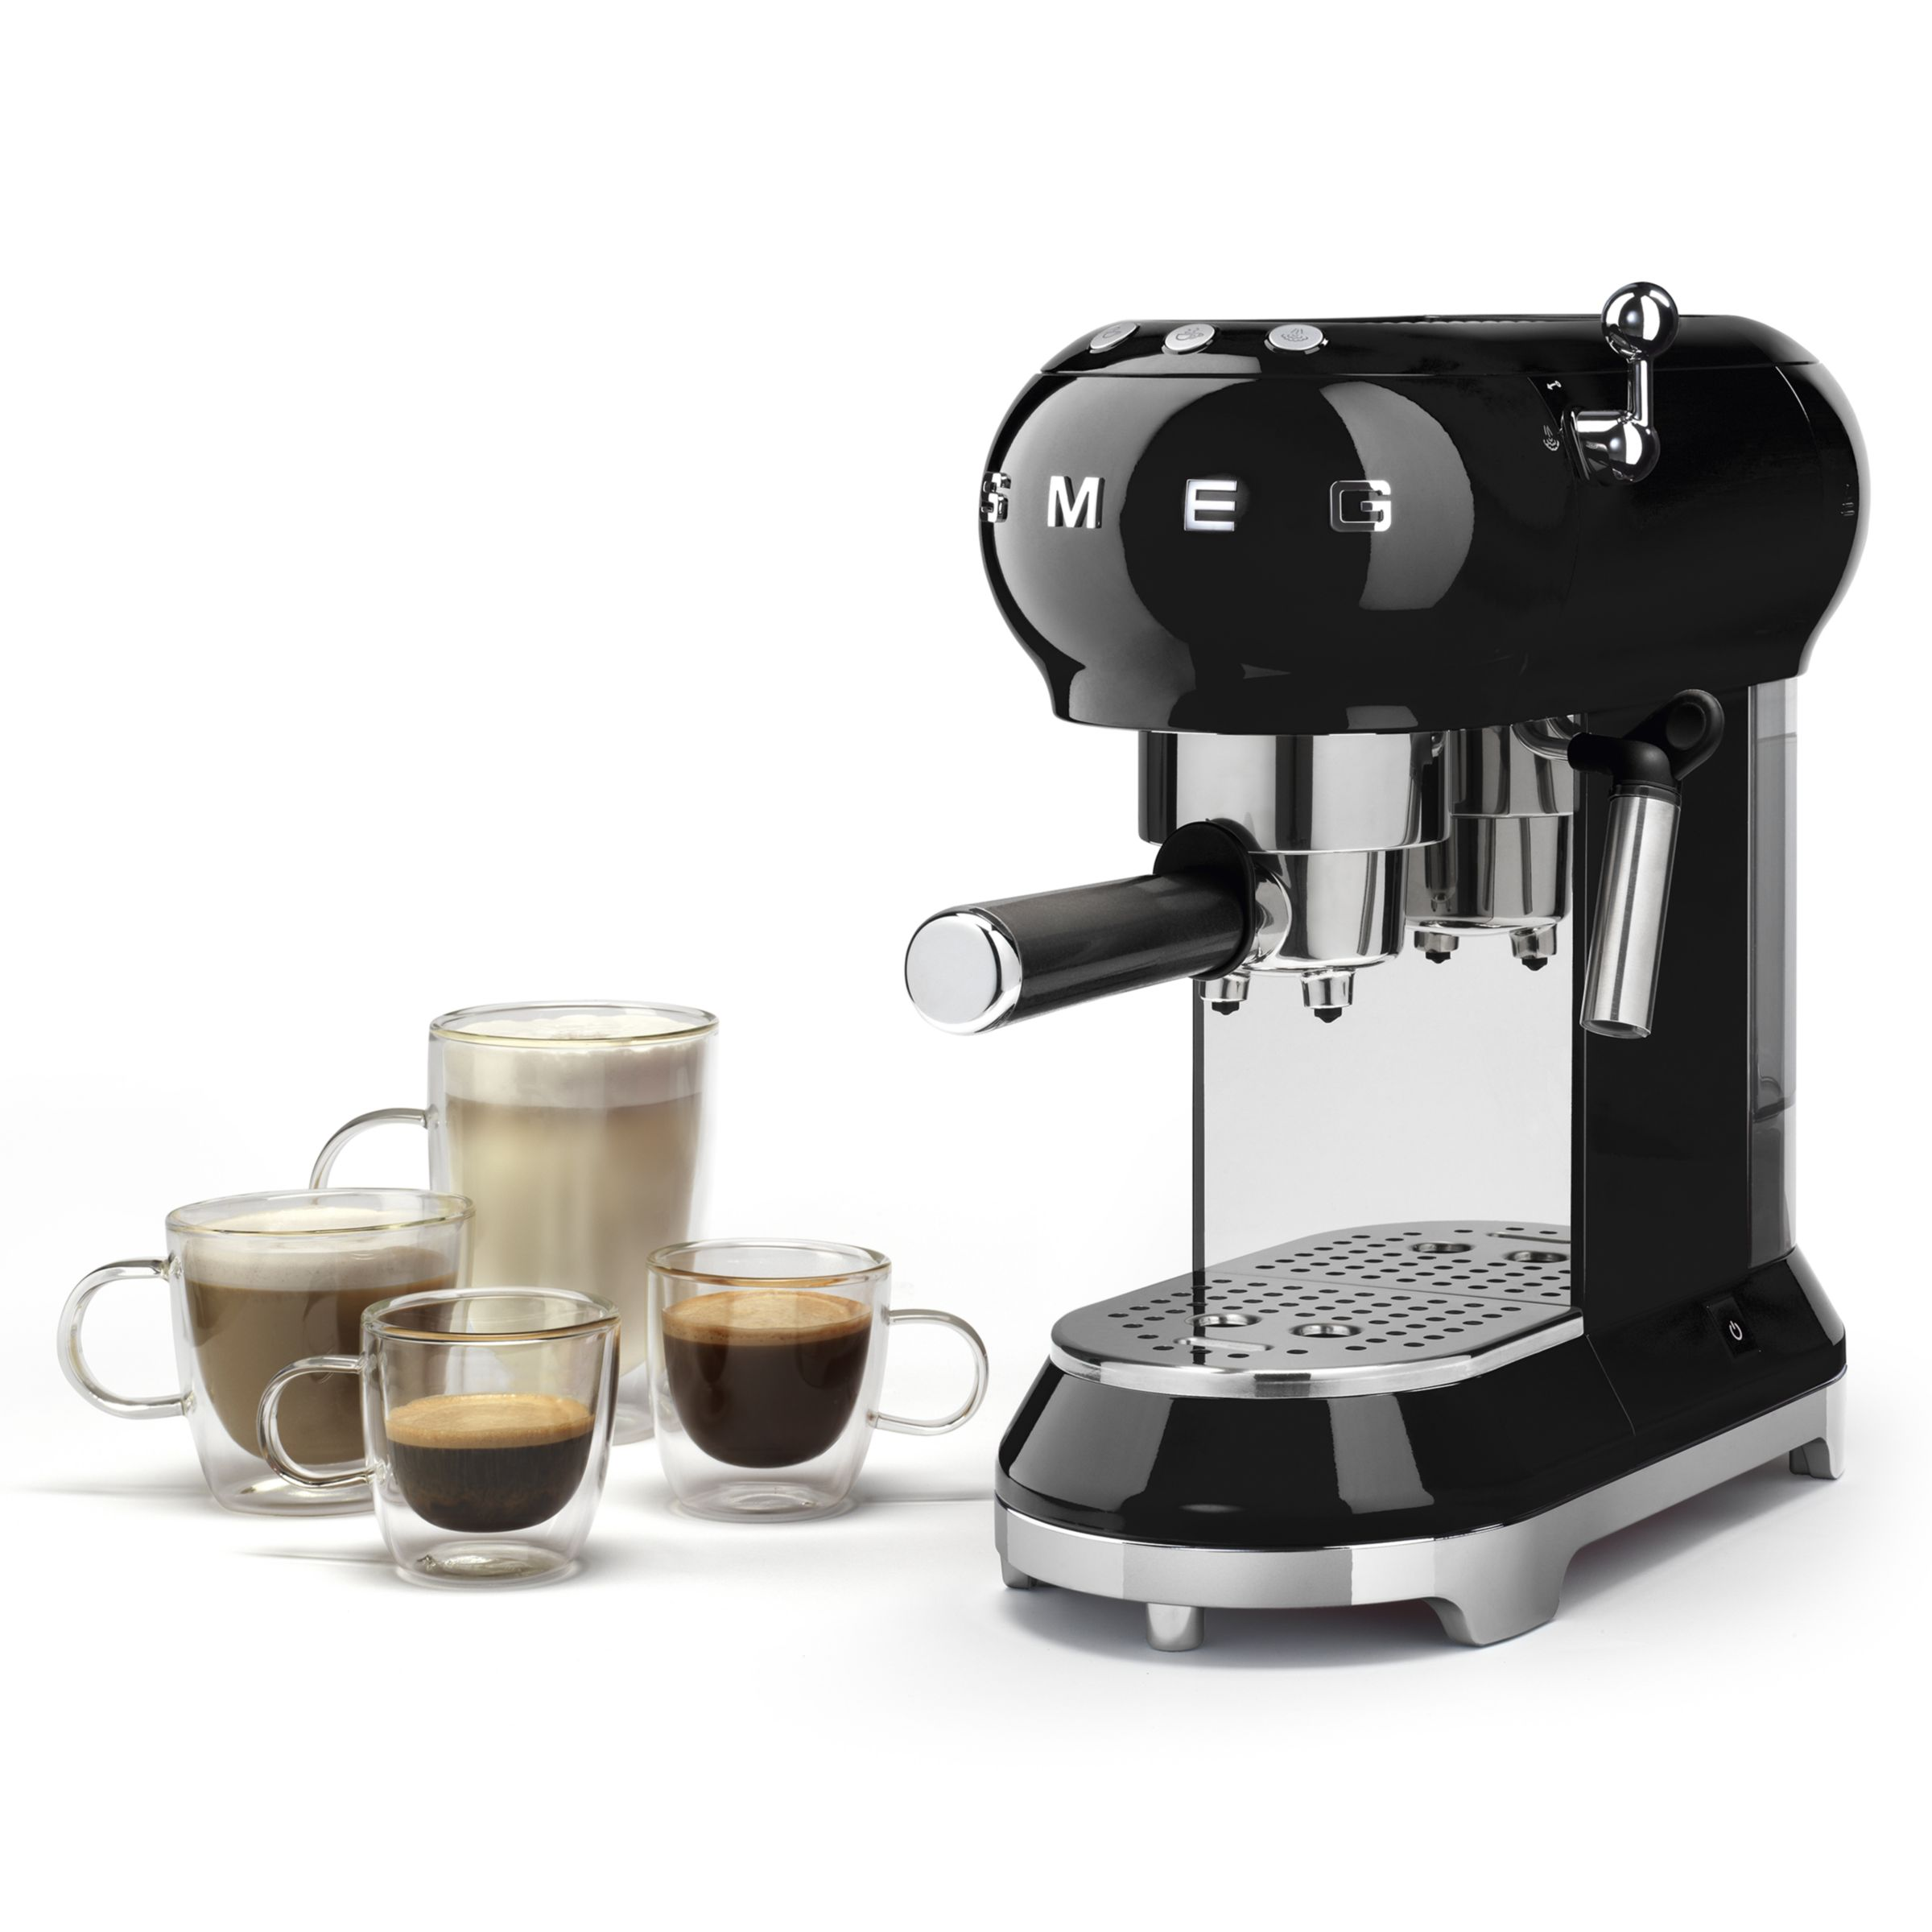 John Lewis Hob Coffee Maker : Buy Smeg ECF01 Coffee Machine John Lewis